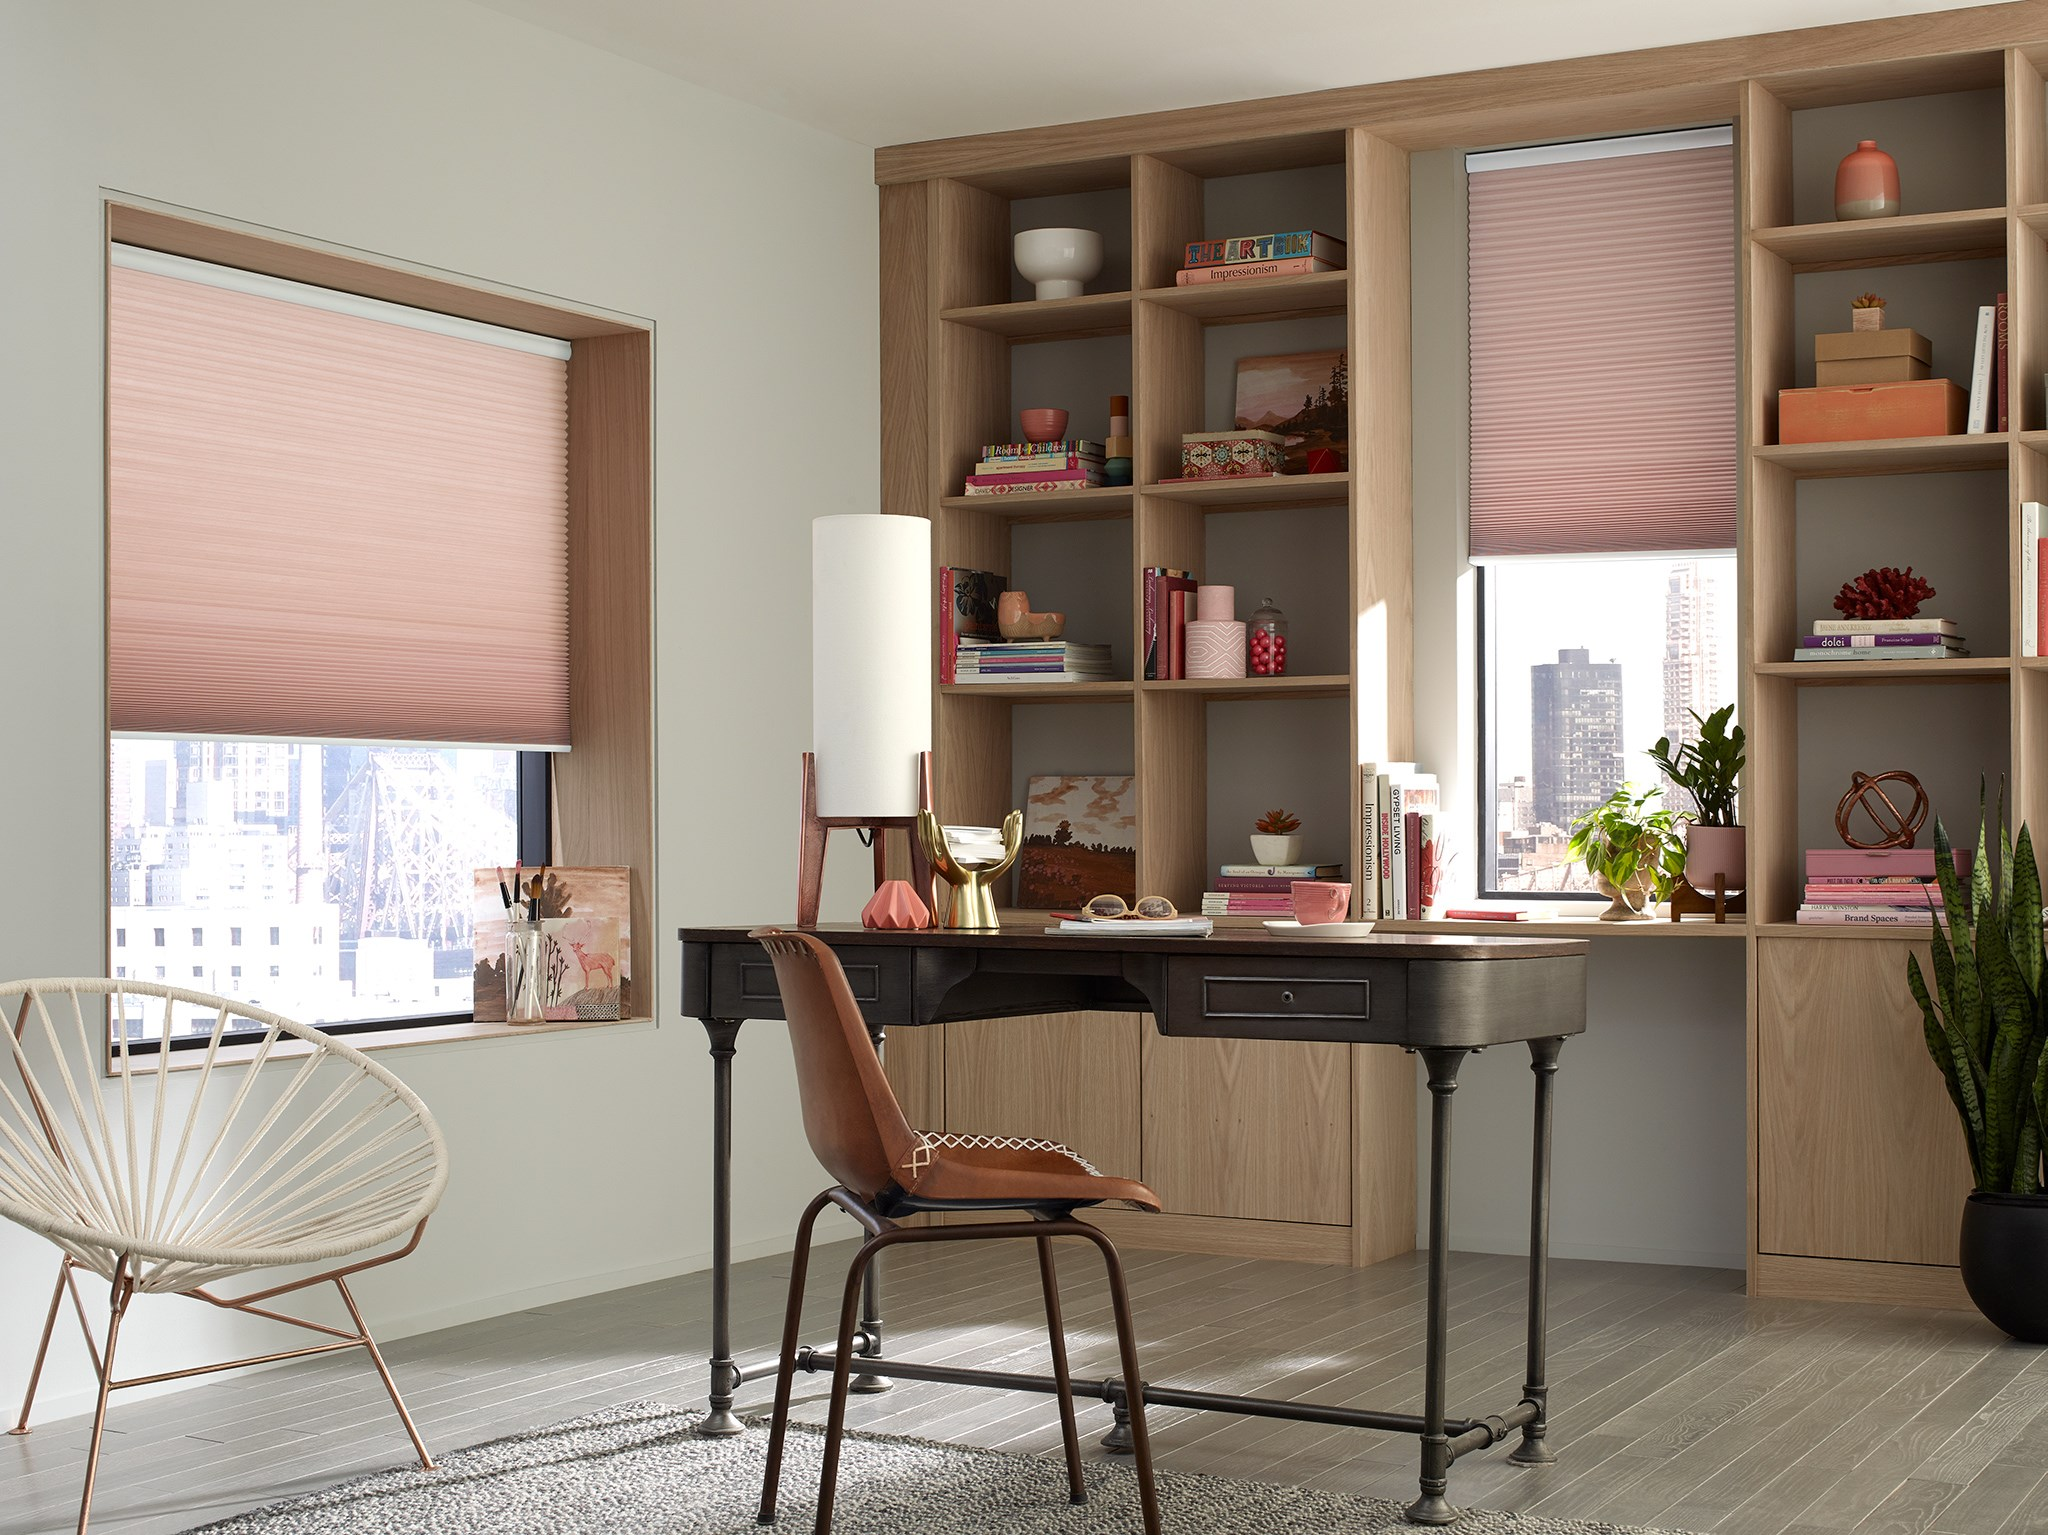 Economy Light Filtering Cellular Shades